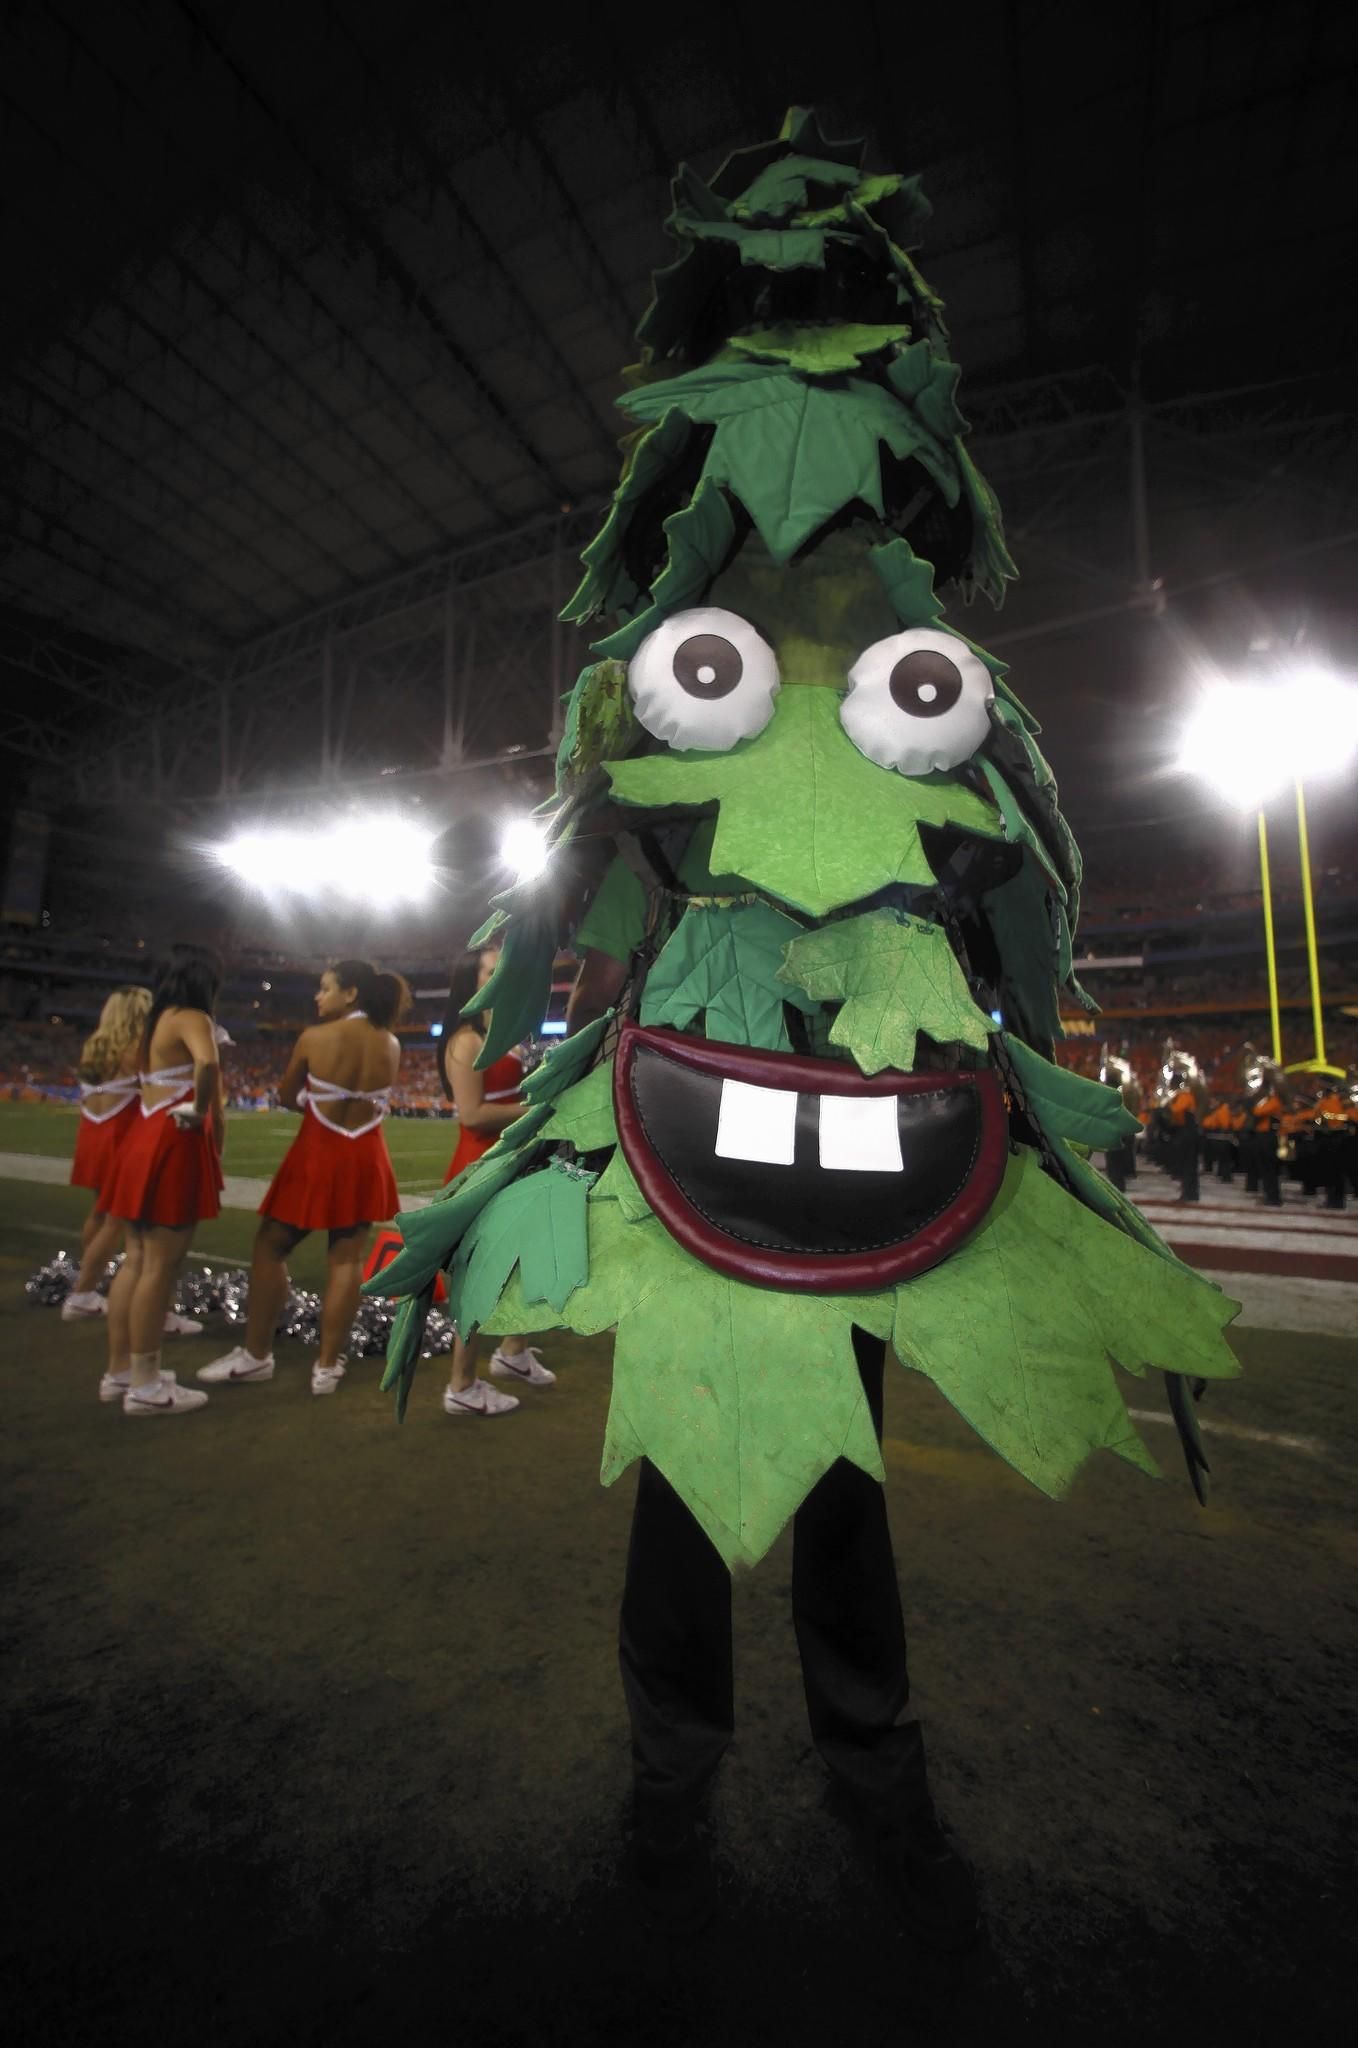 The Stanford University mascot, Tree, got into some trouble at a basketball game in 2006.